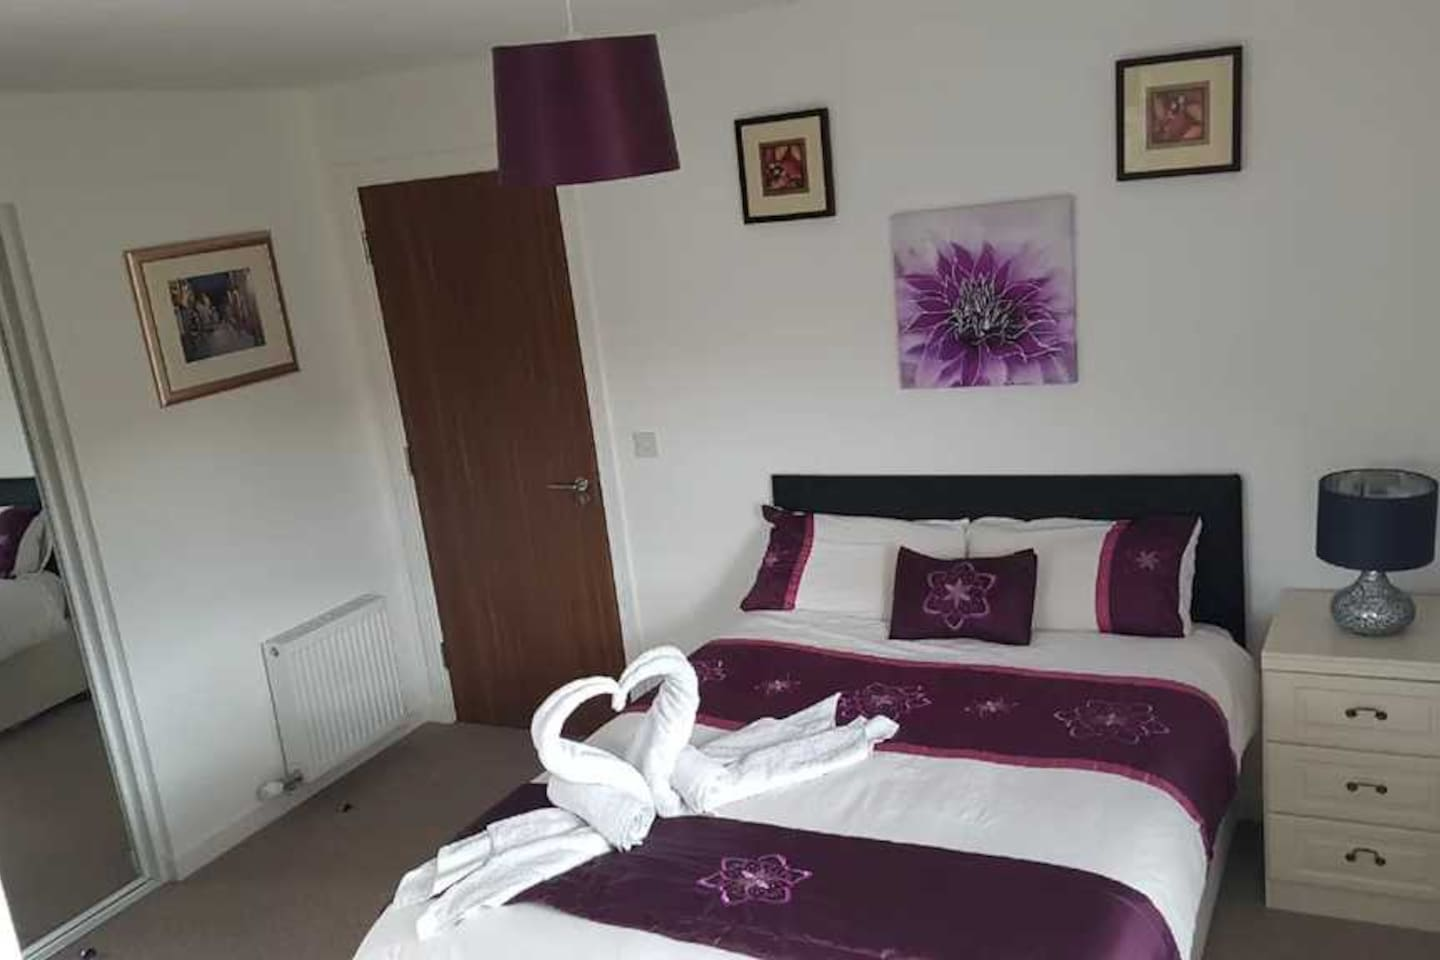 four bed room and four bathroom house. each room have a private bathroom. share living room, kitchen,car park and back garden.  close to Glasgow city center and bus stop and Dalmarnock train station (7 minute to Glasgow train station).